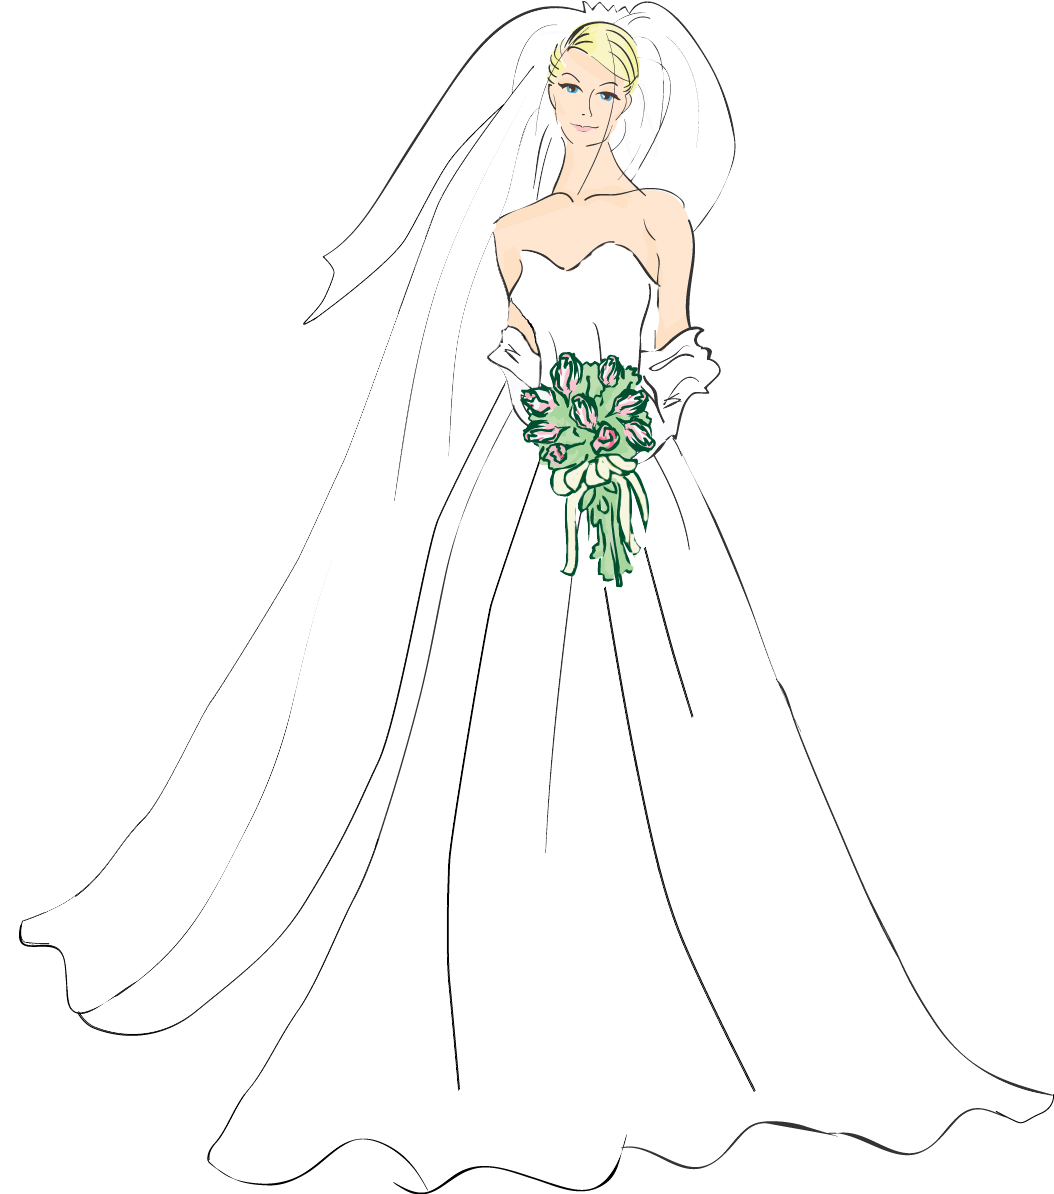 forgetmenot brides bridal clipart his and hers rings bride clipart